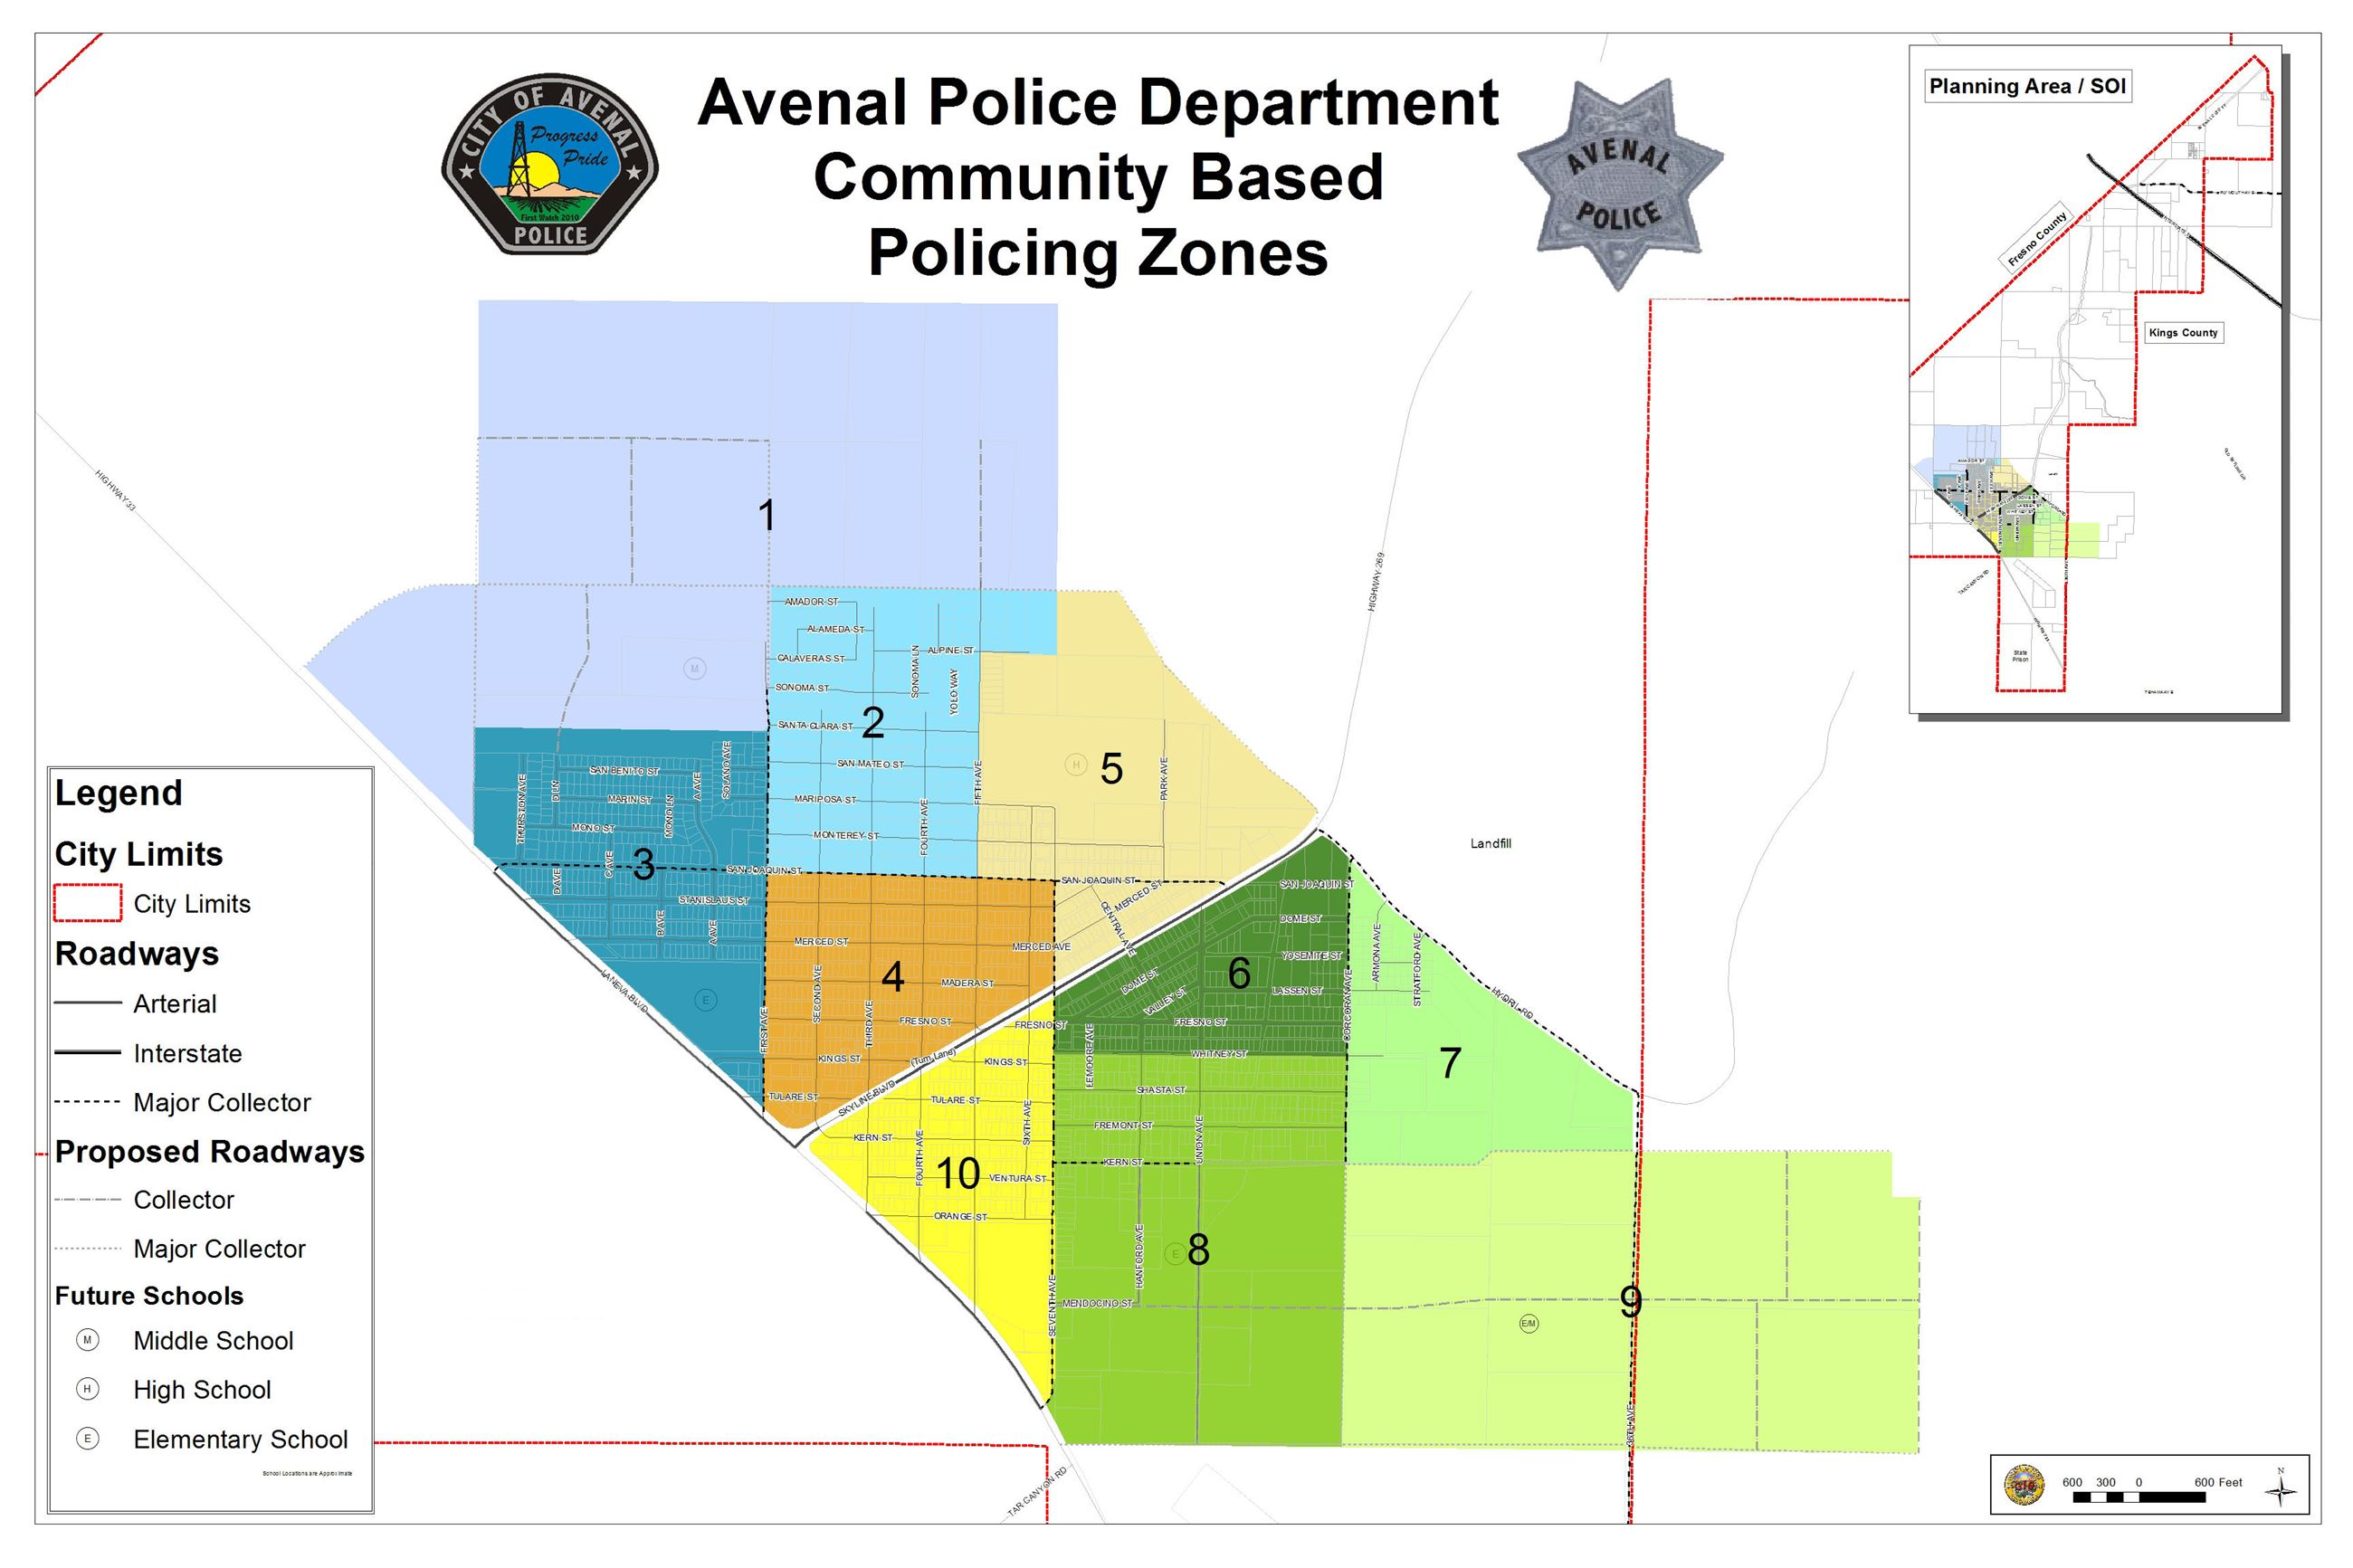 Community-Based Policing Zones Map